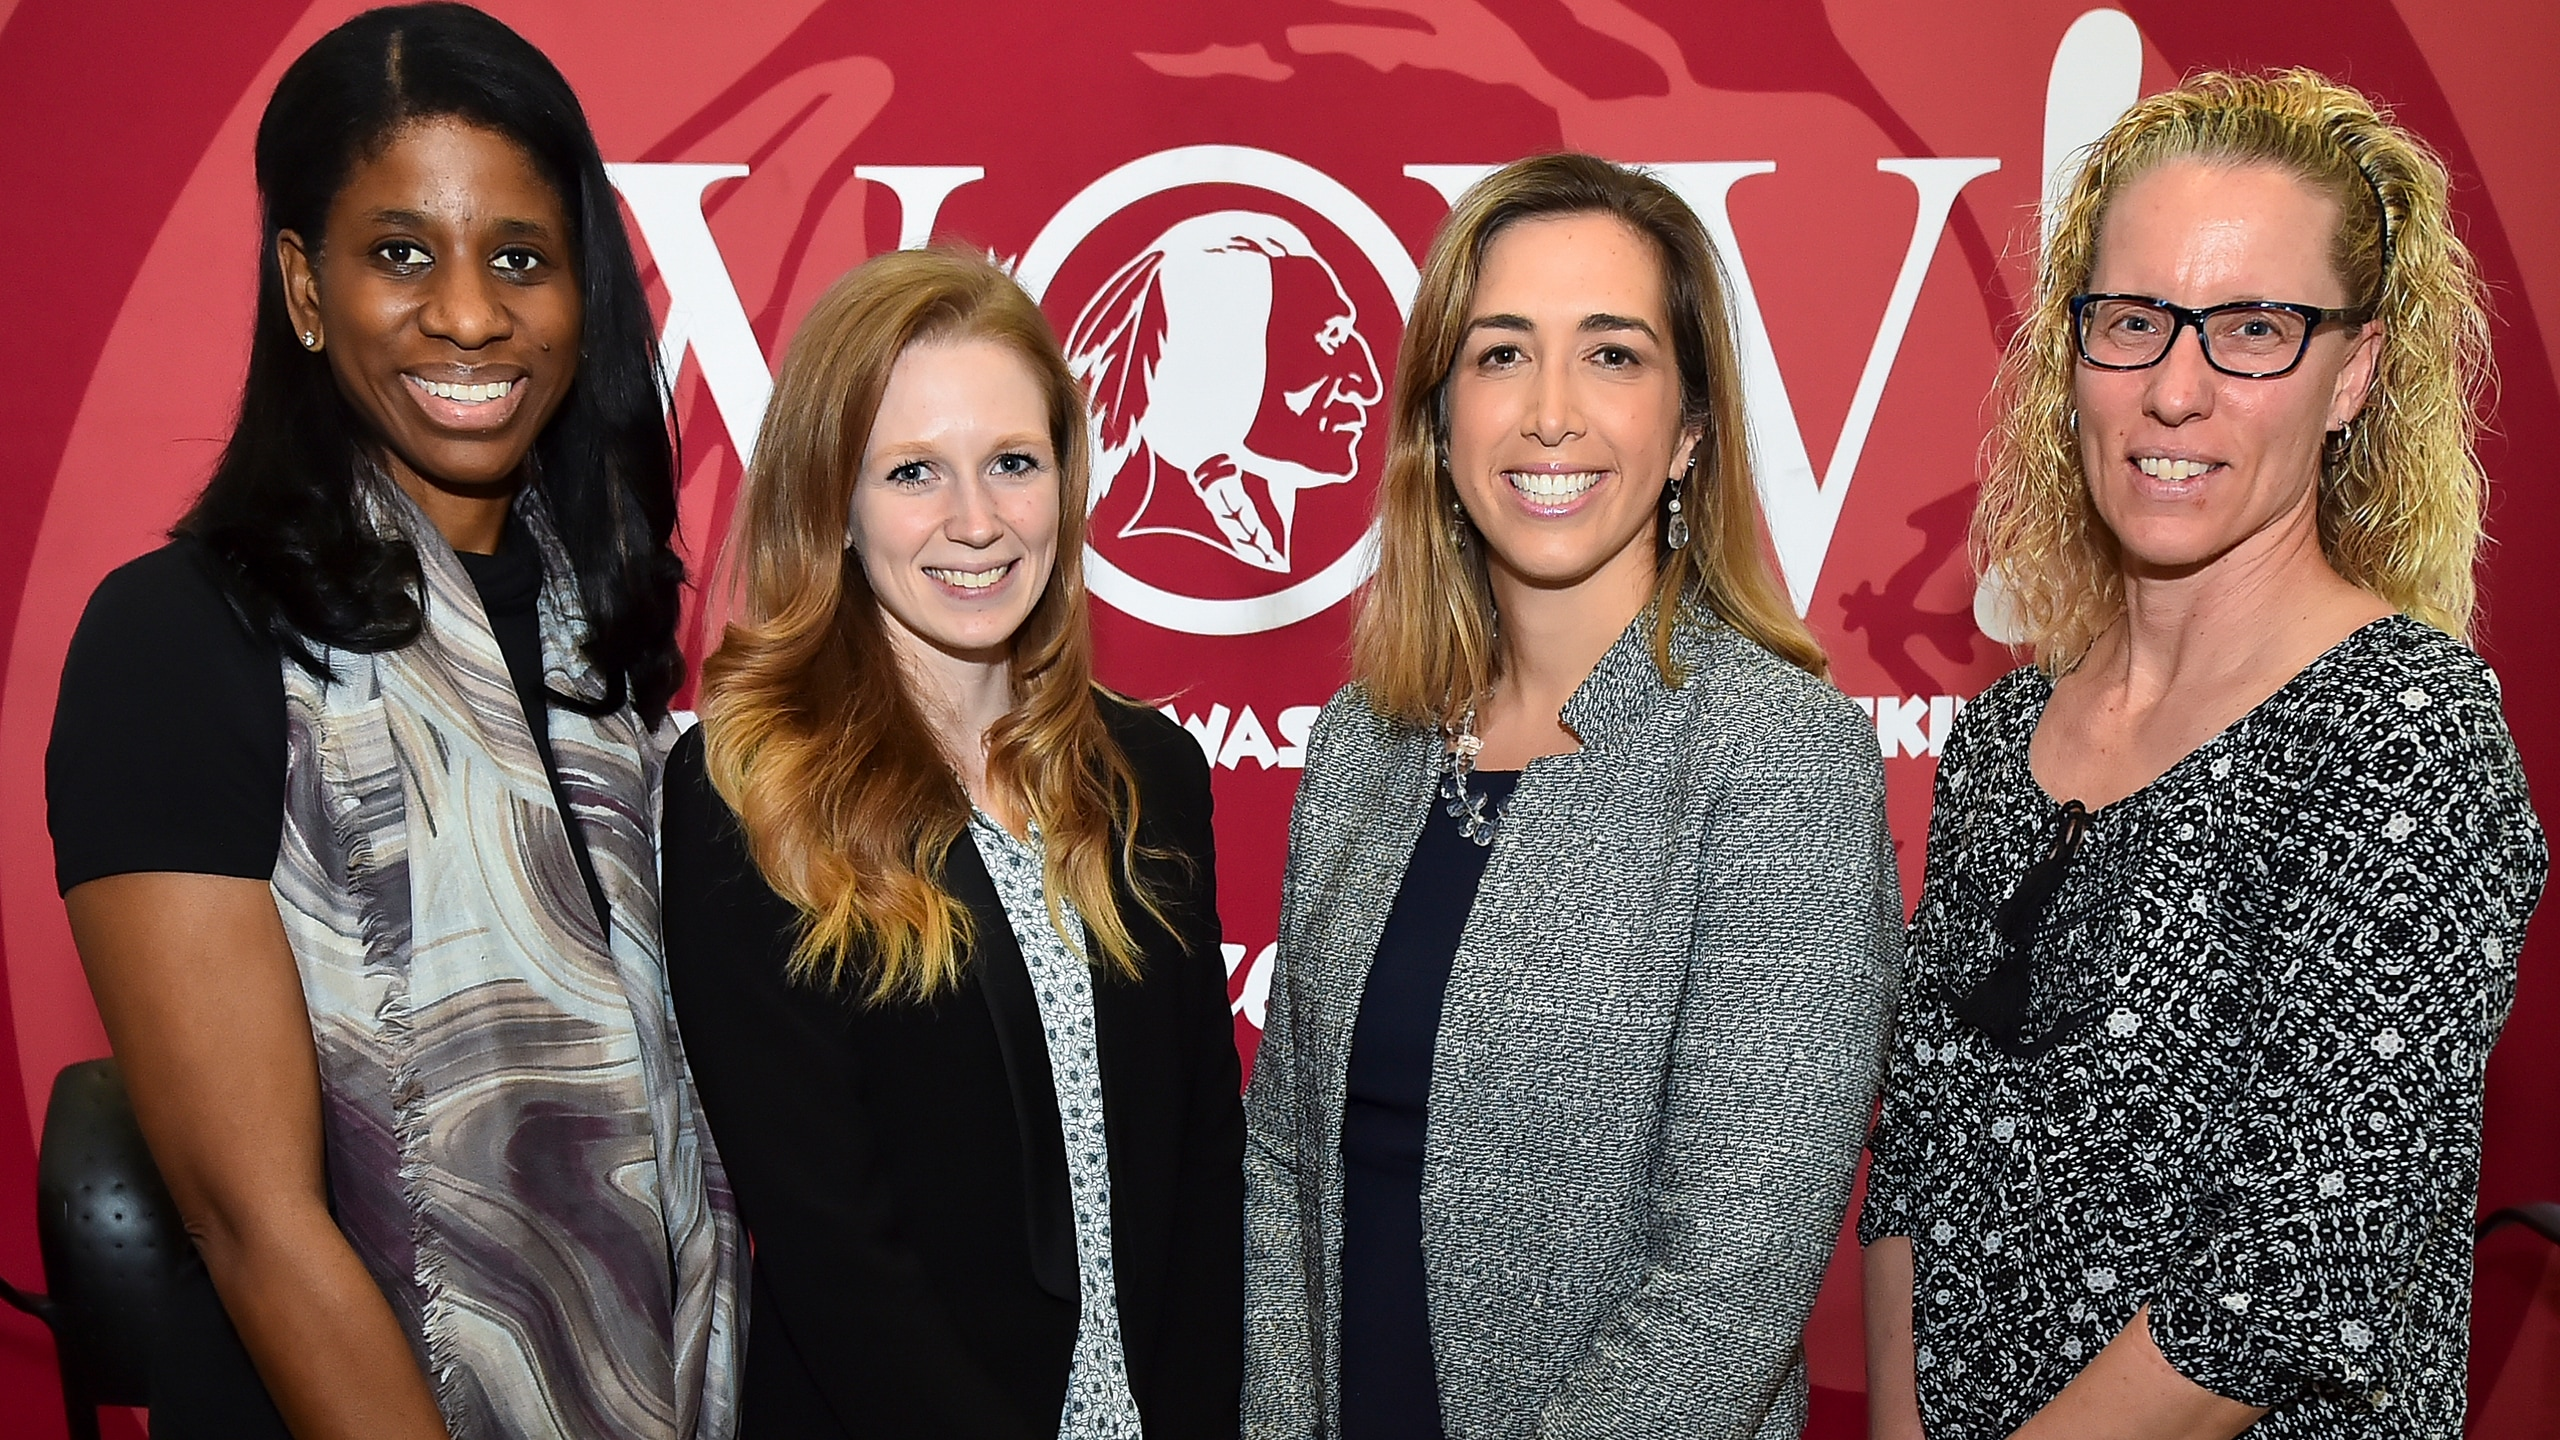 The Women of Washington Redskins